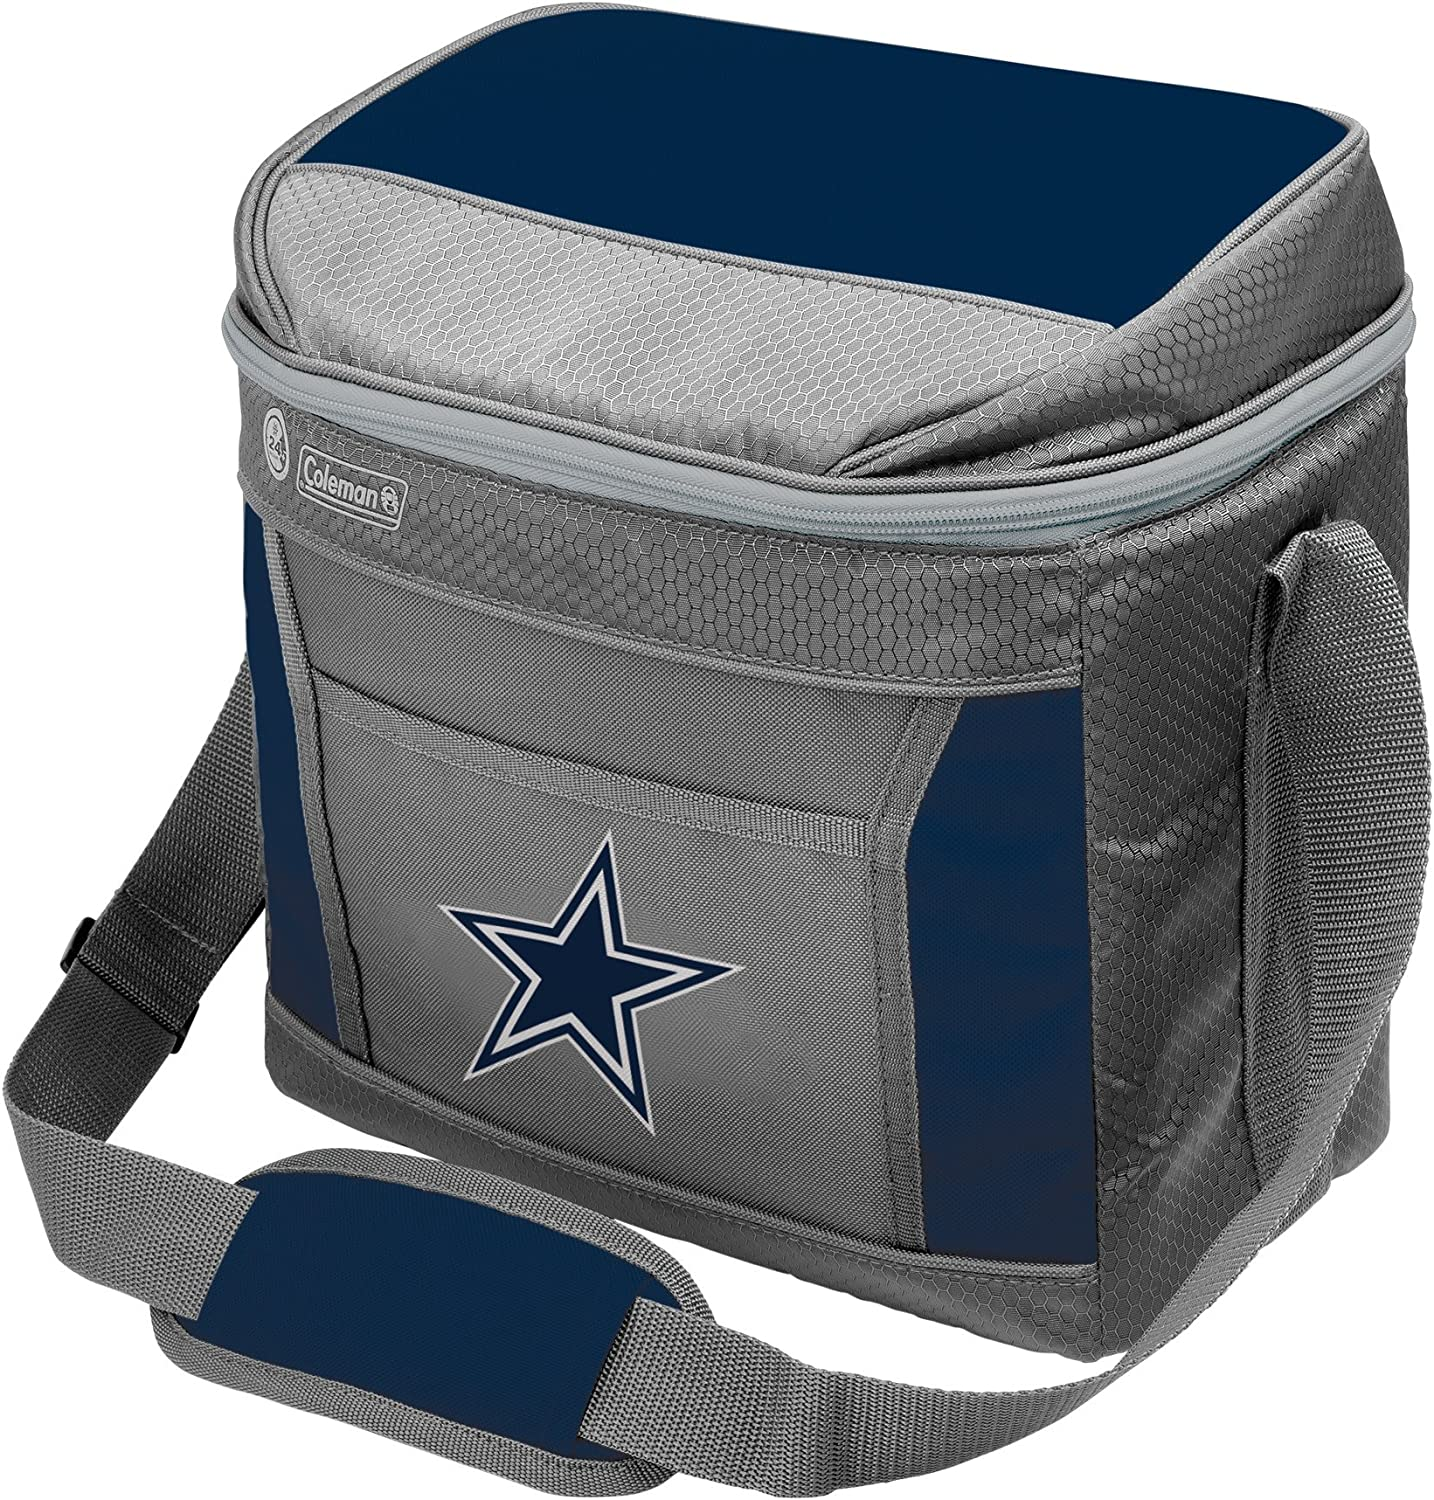 NFL Soft-Sided Insulated Cooler Bag, 16-Can Capacity ALL TEAM OPTIONS